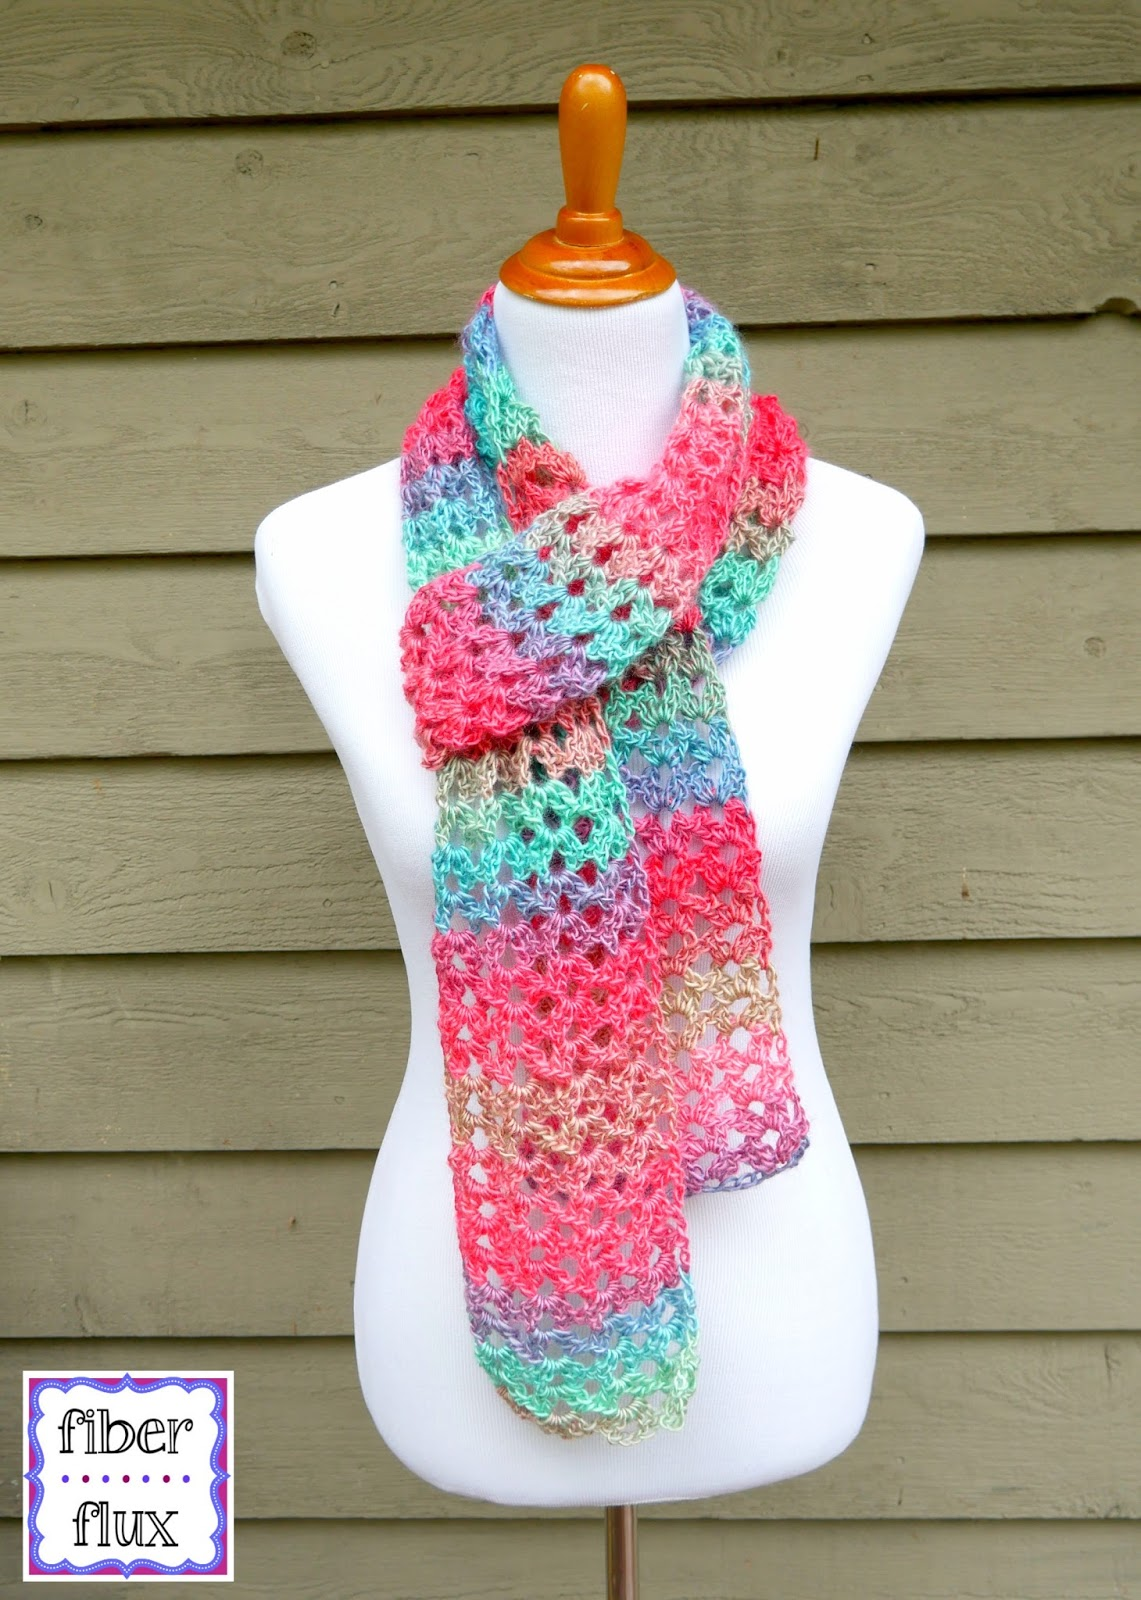 Free crochet patternland lace scarf fiber fluxventures instructions ch 28 row 1 in the 6th ch from the hook work 2 dc ch 3 2 dc skip 5 ch then in the next ch work 2 dc ch 3 fandeluxe Gallery